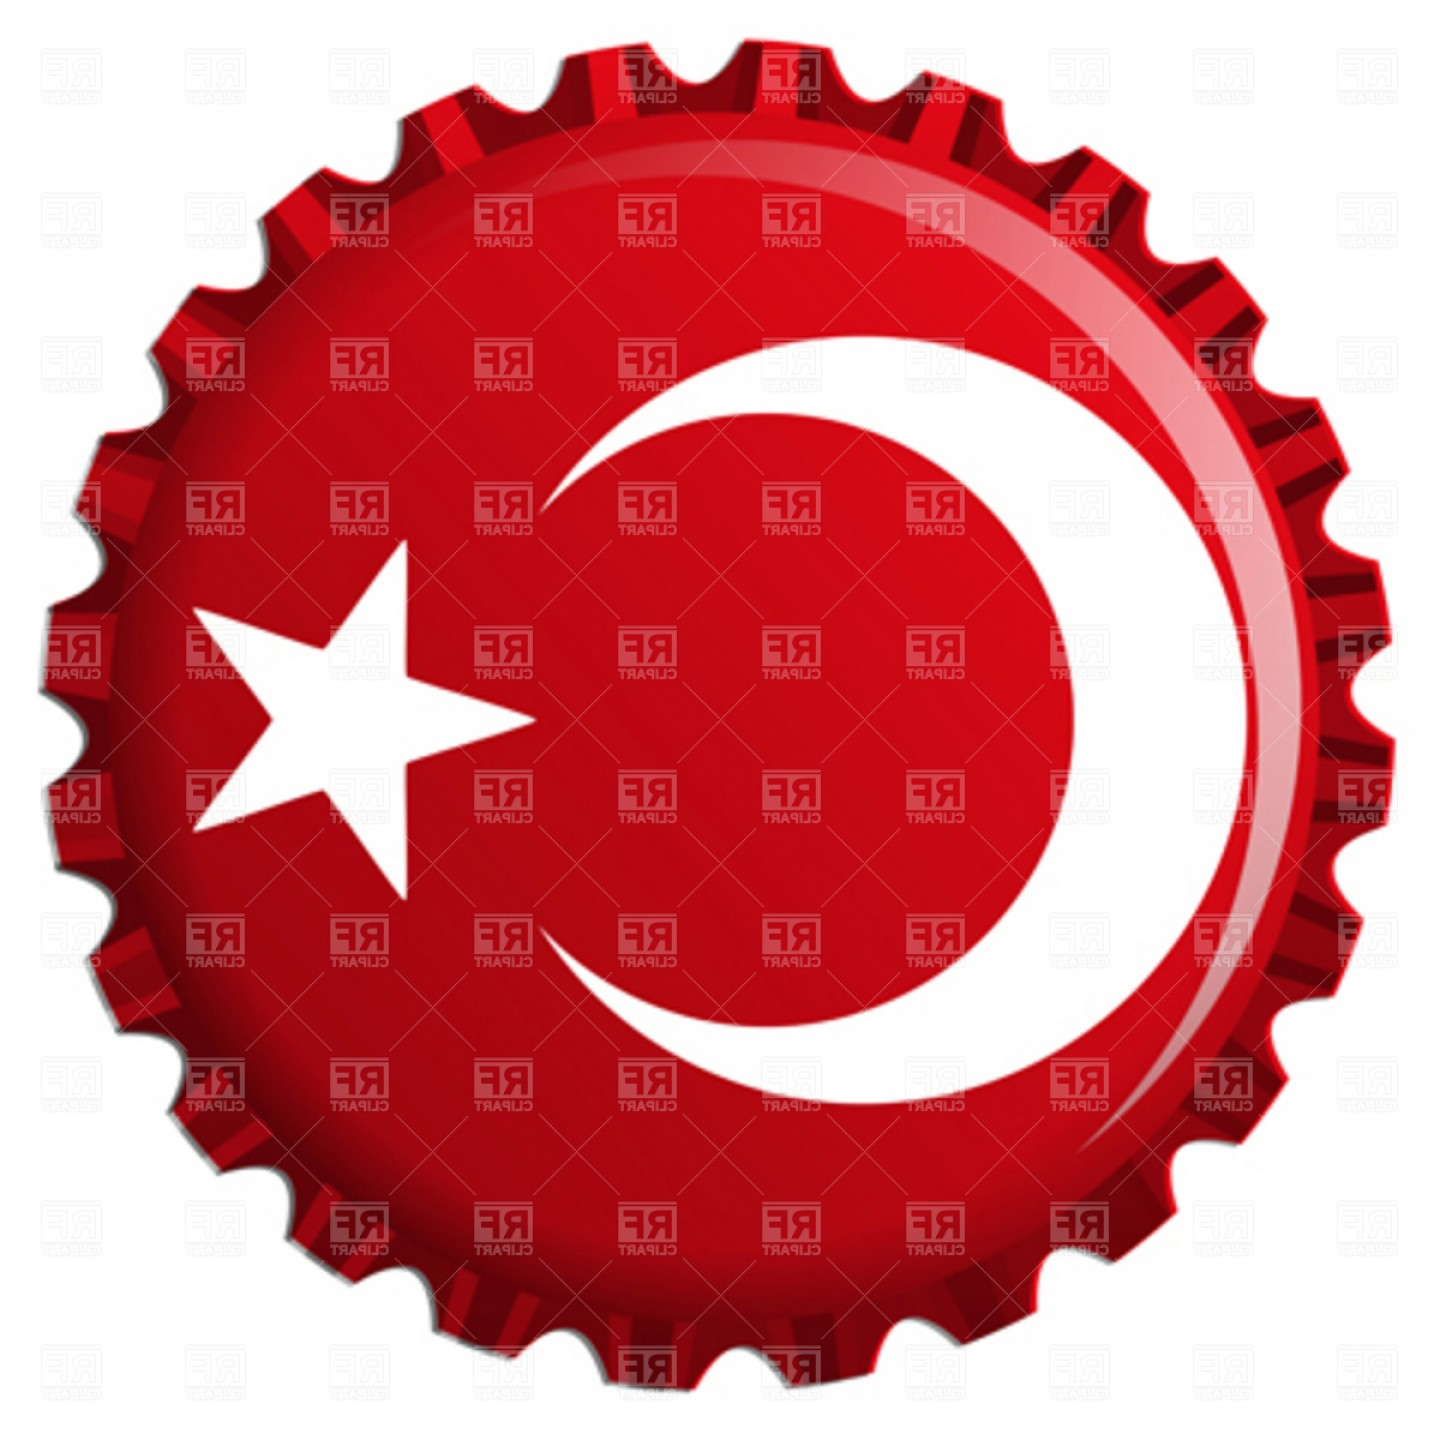 Turkey Logo Vector Art: Turkey Stylized Flag On Bottle Cap Vector Clipart